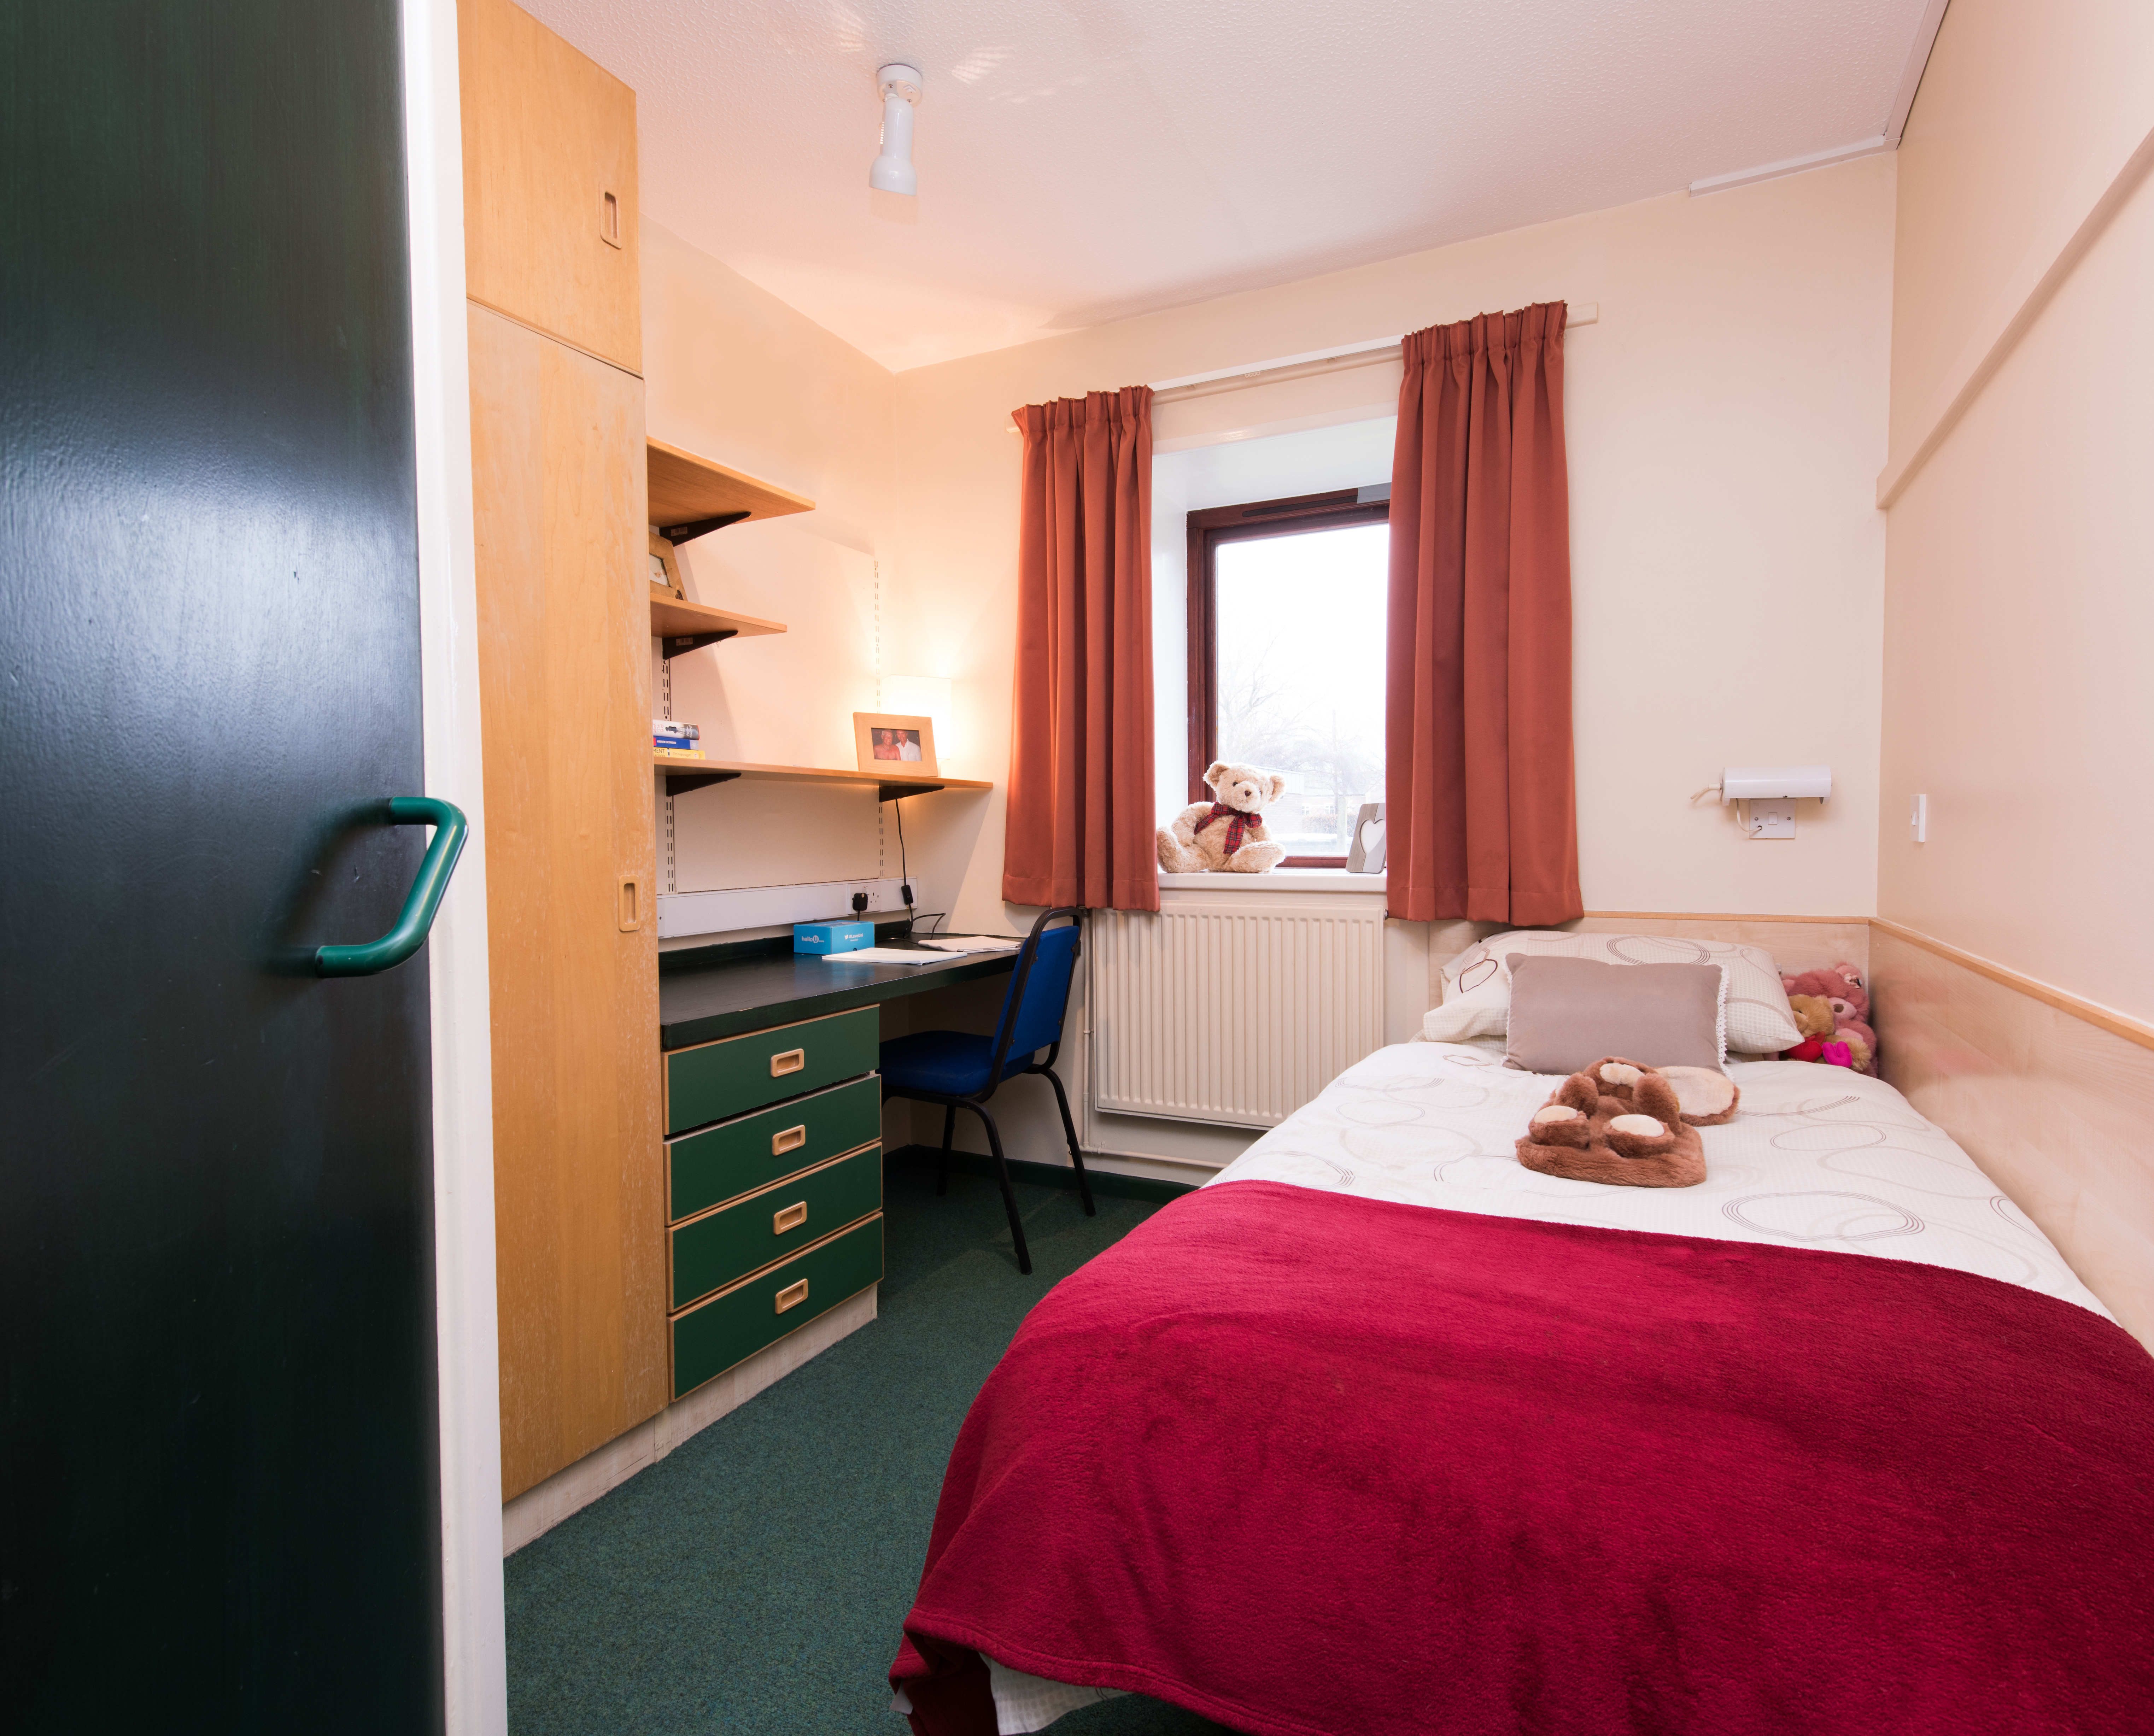 Accommodation at our conference venues